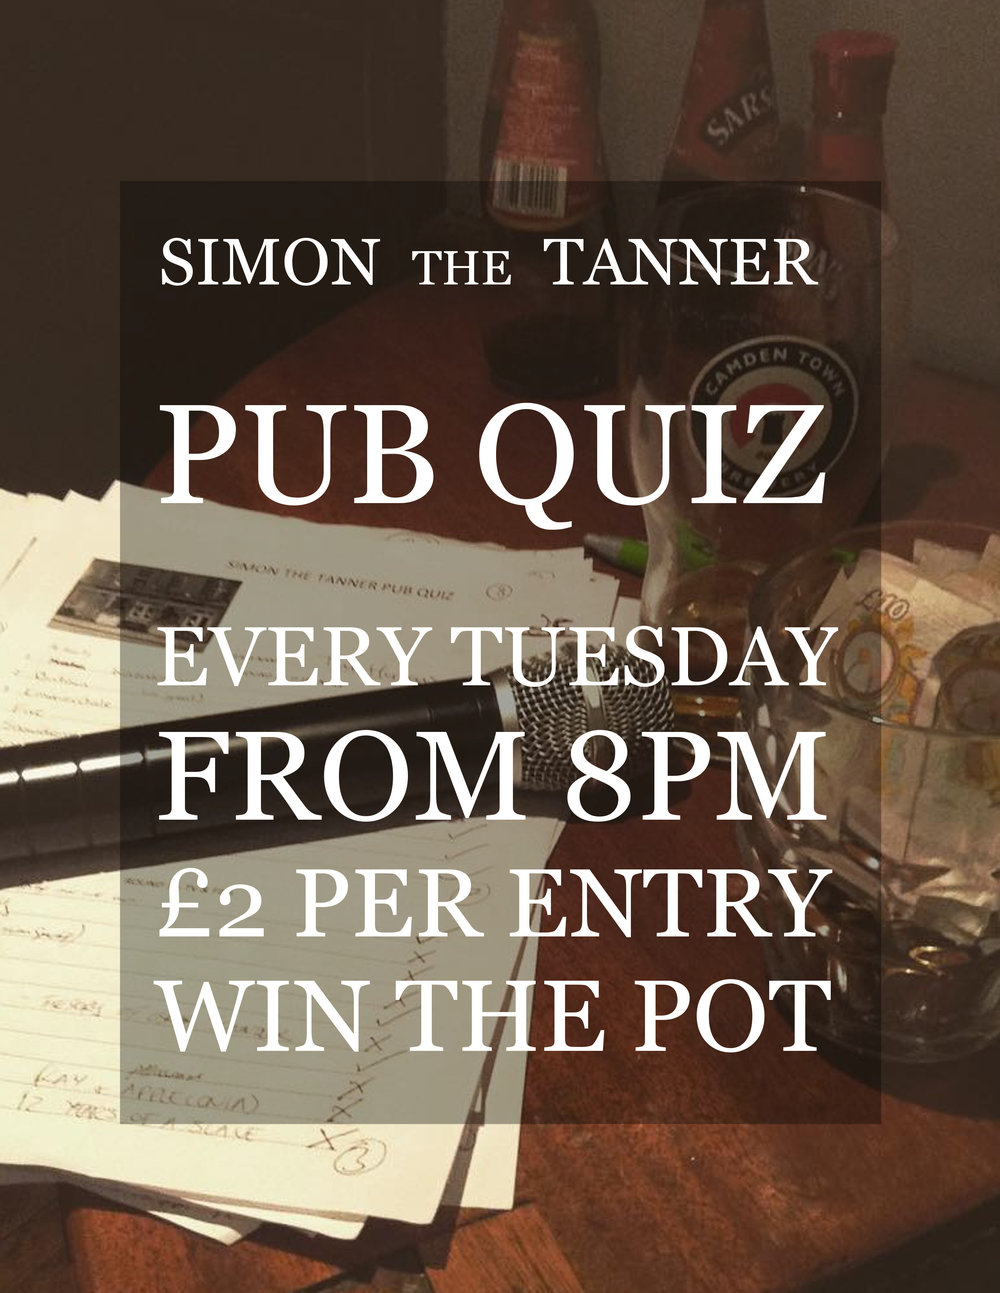 Pub quiz flyer.jpeg